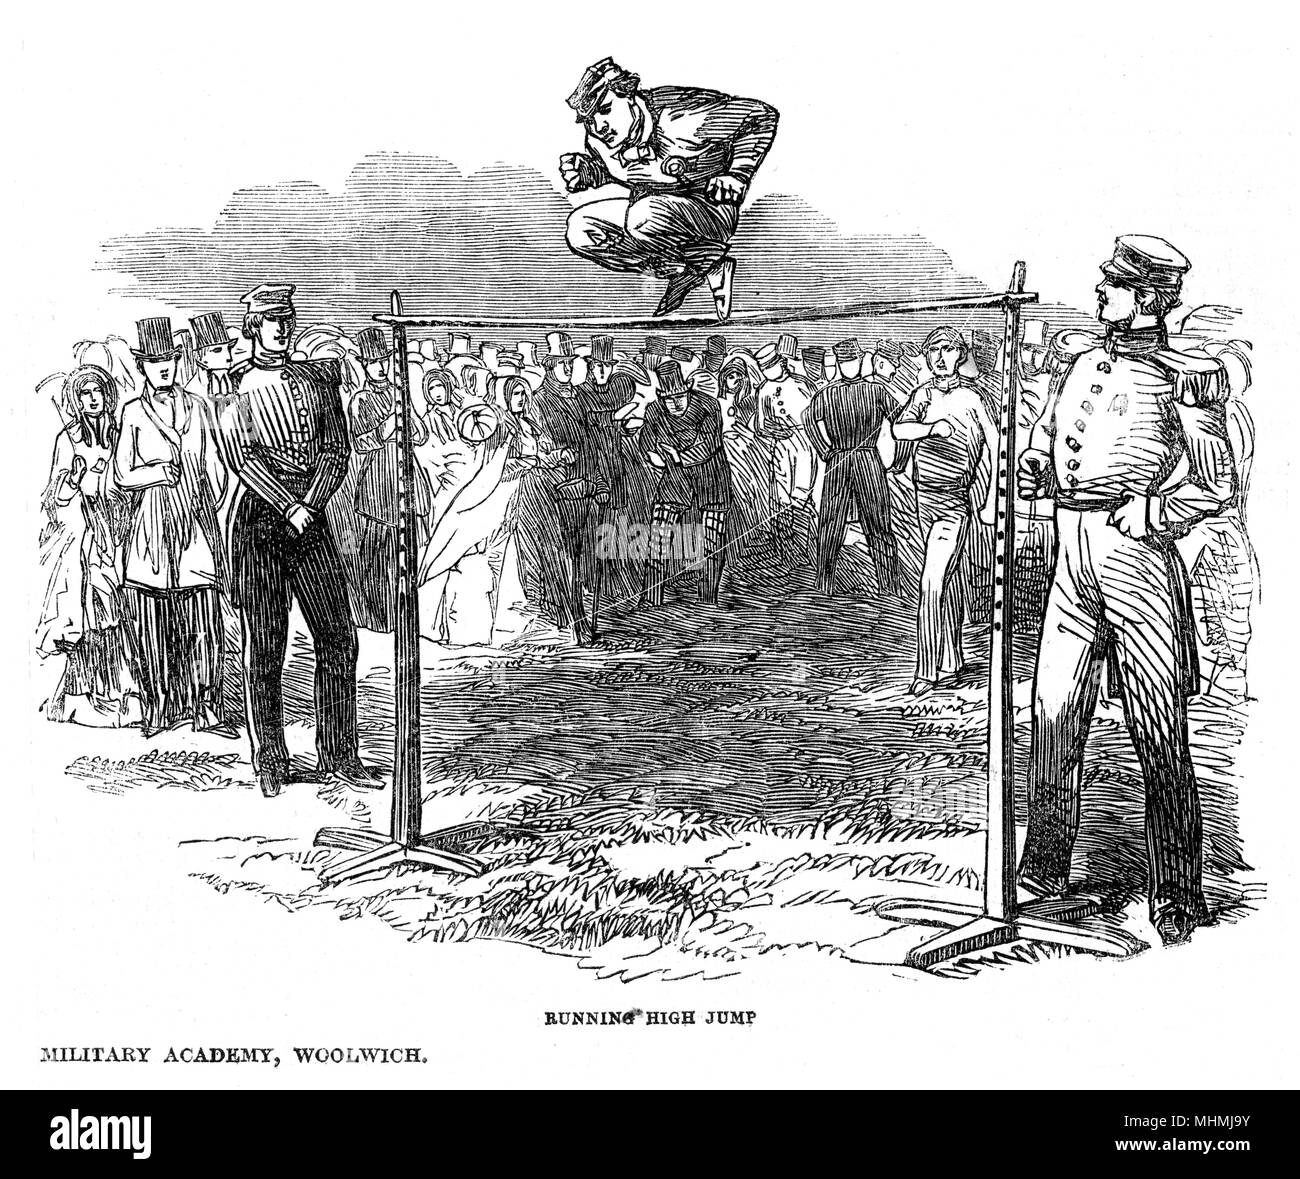 Athletic games at the Royal Military Academy, Woolwich : the Running High Jump       Date: 1850 - Stock Image